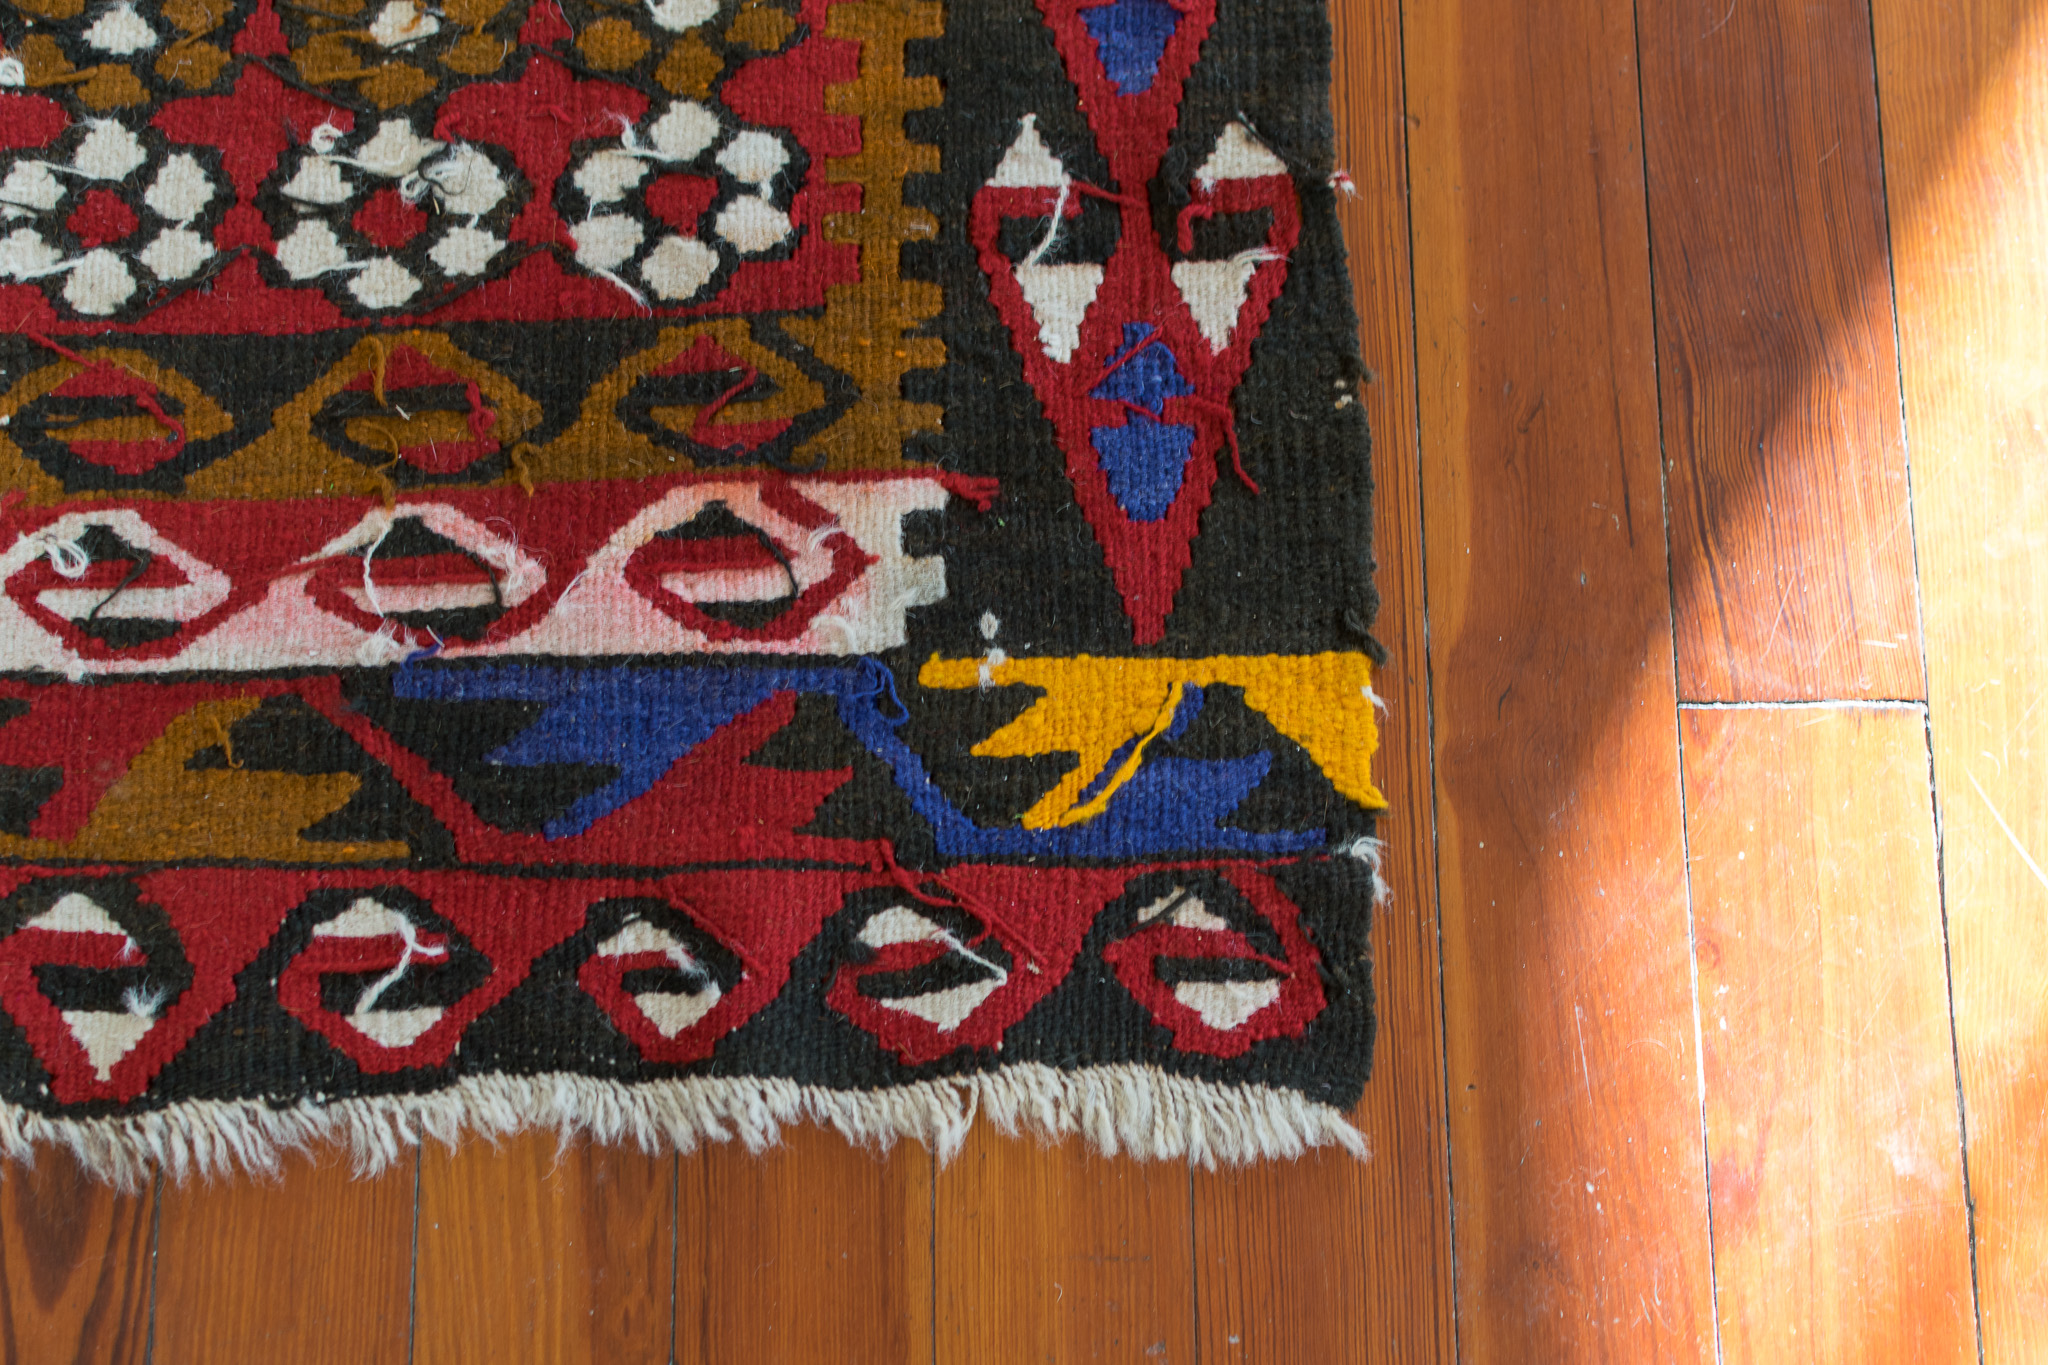 A photo of the corner patterned rug and the floor beneath it.